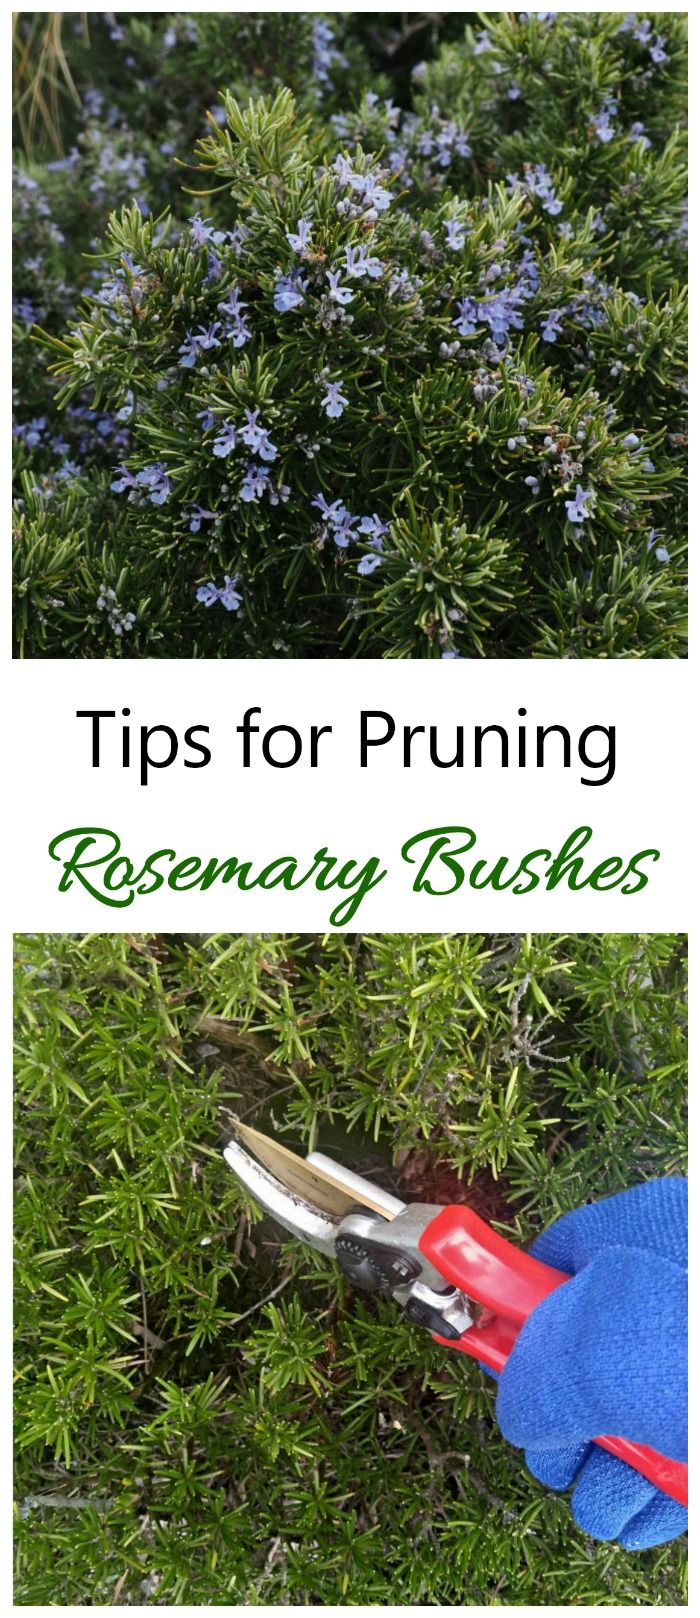 When to prune blueberries  Pruning Rosemary  How and When to Prune Rosemary Plants u Bushes